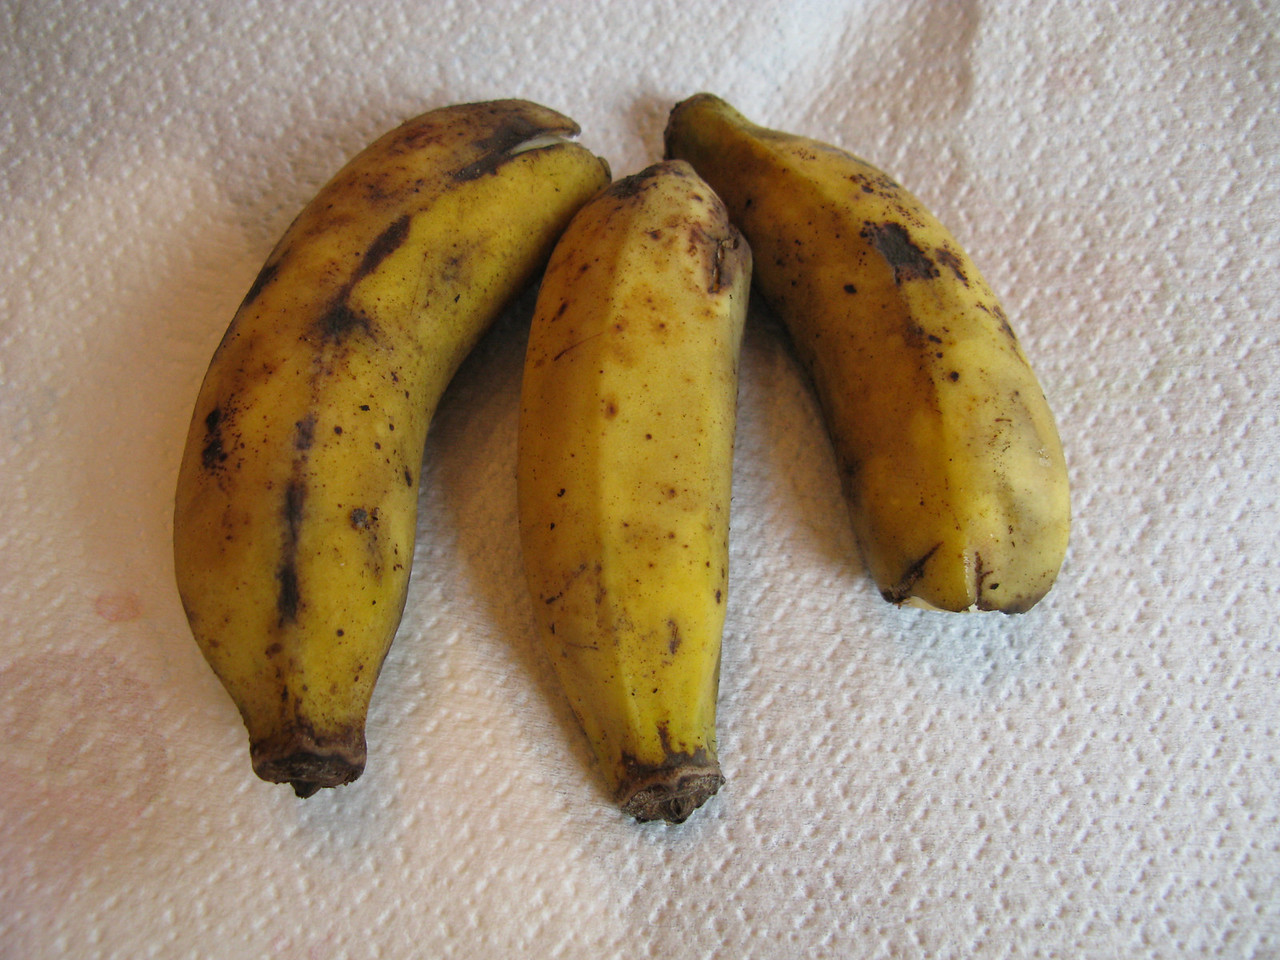 Apple Bananas<br /> February 3, 2008